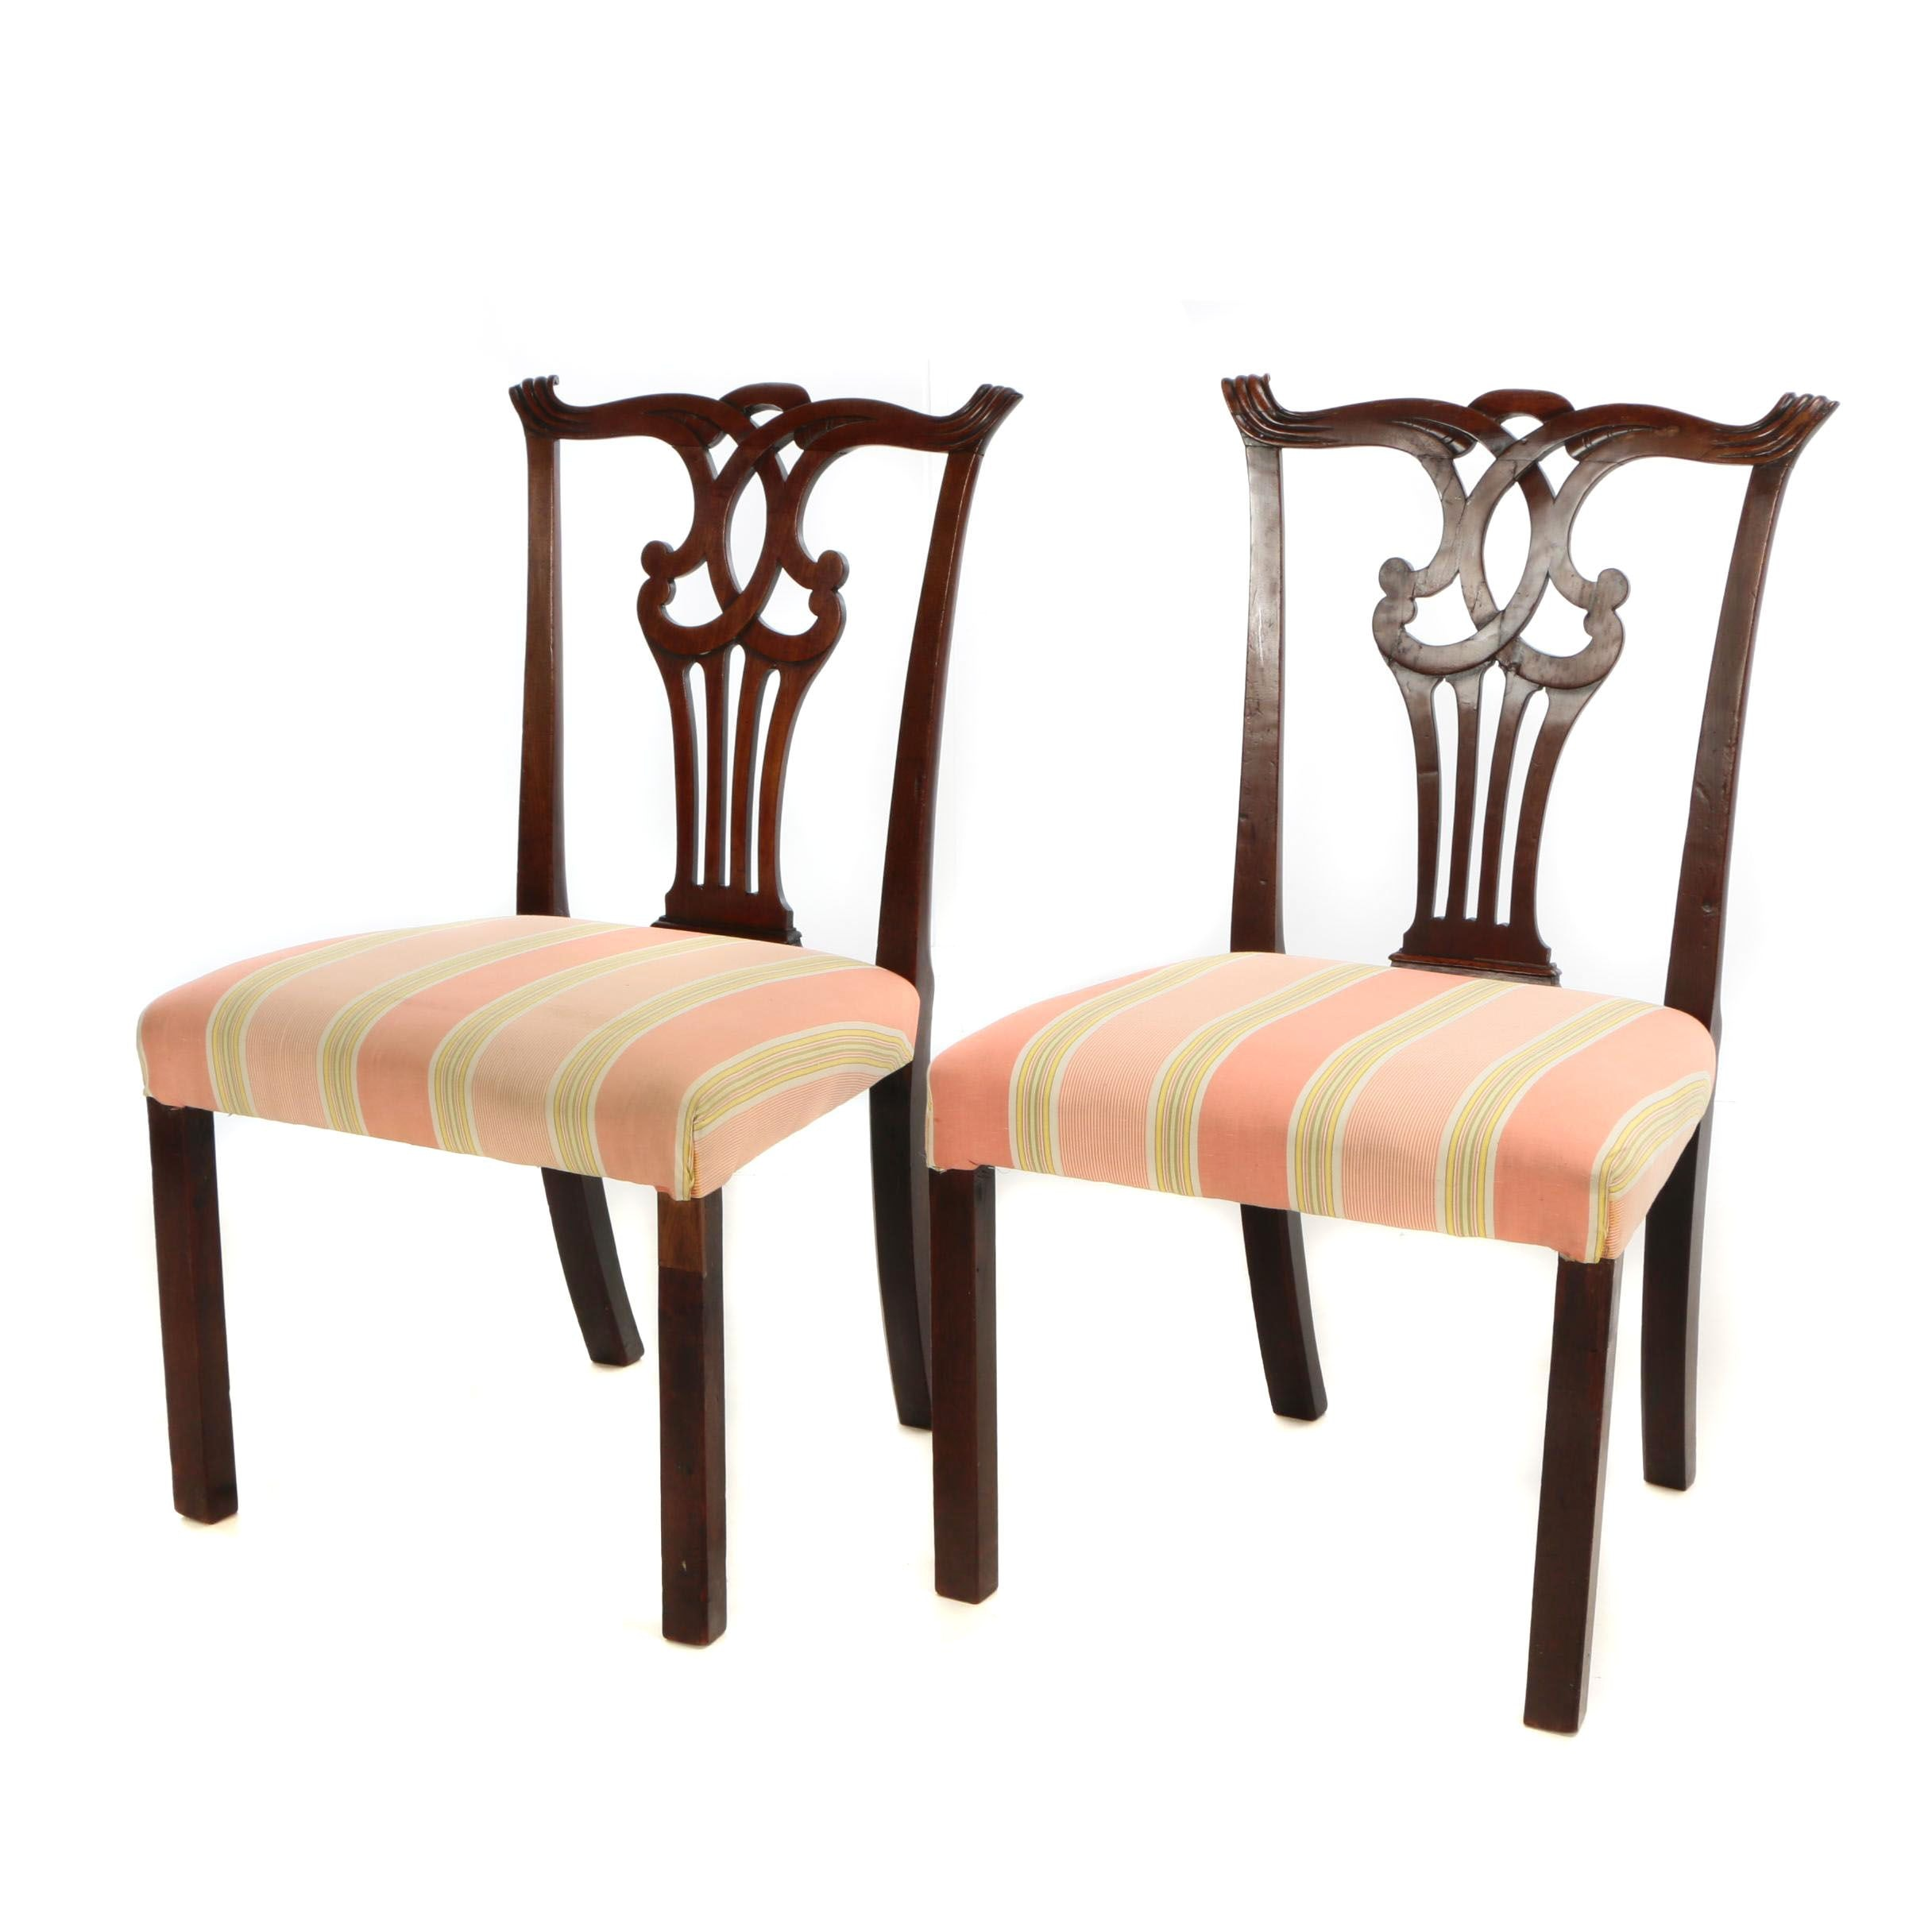 Pair of Massachusetts Chippendale Mahogany Side Chairs, 18th Century and Later